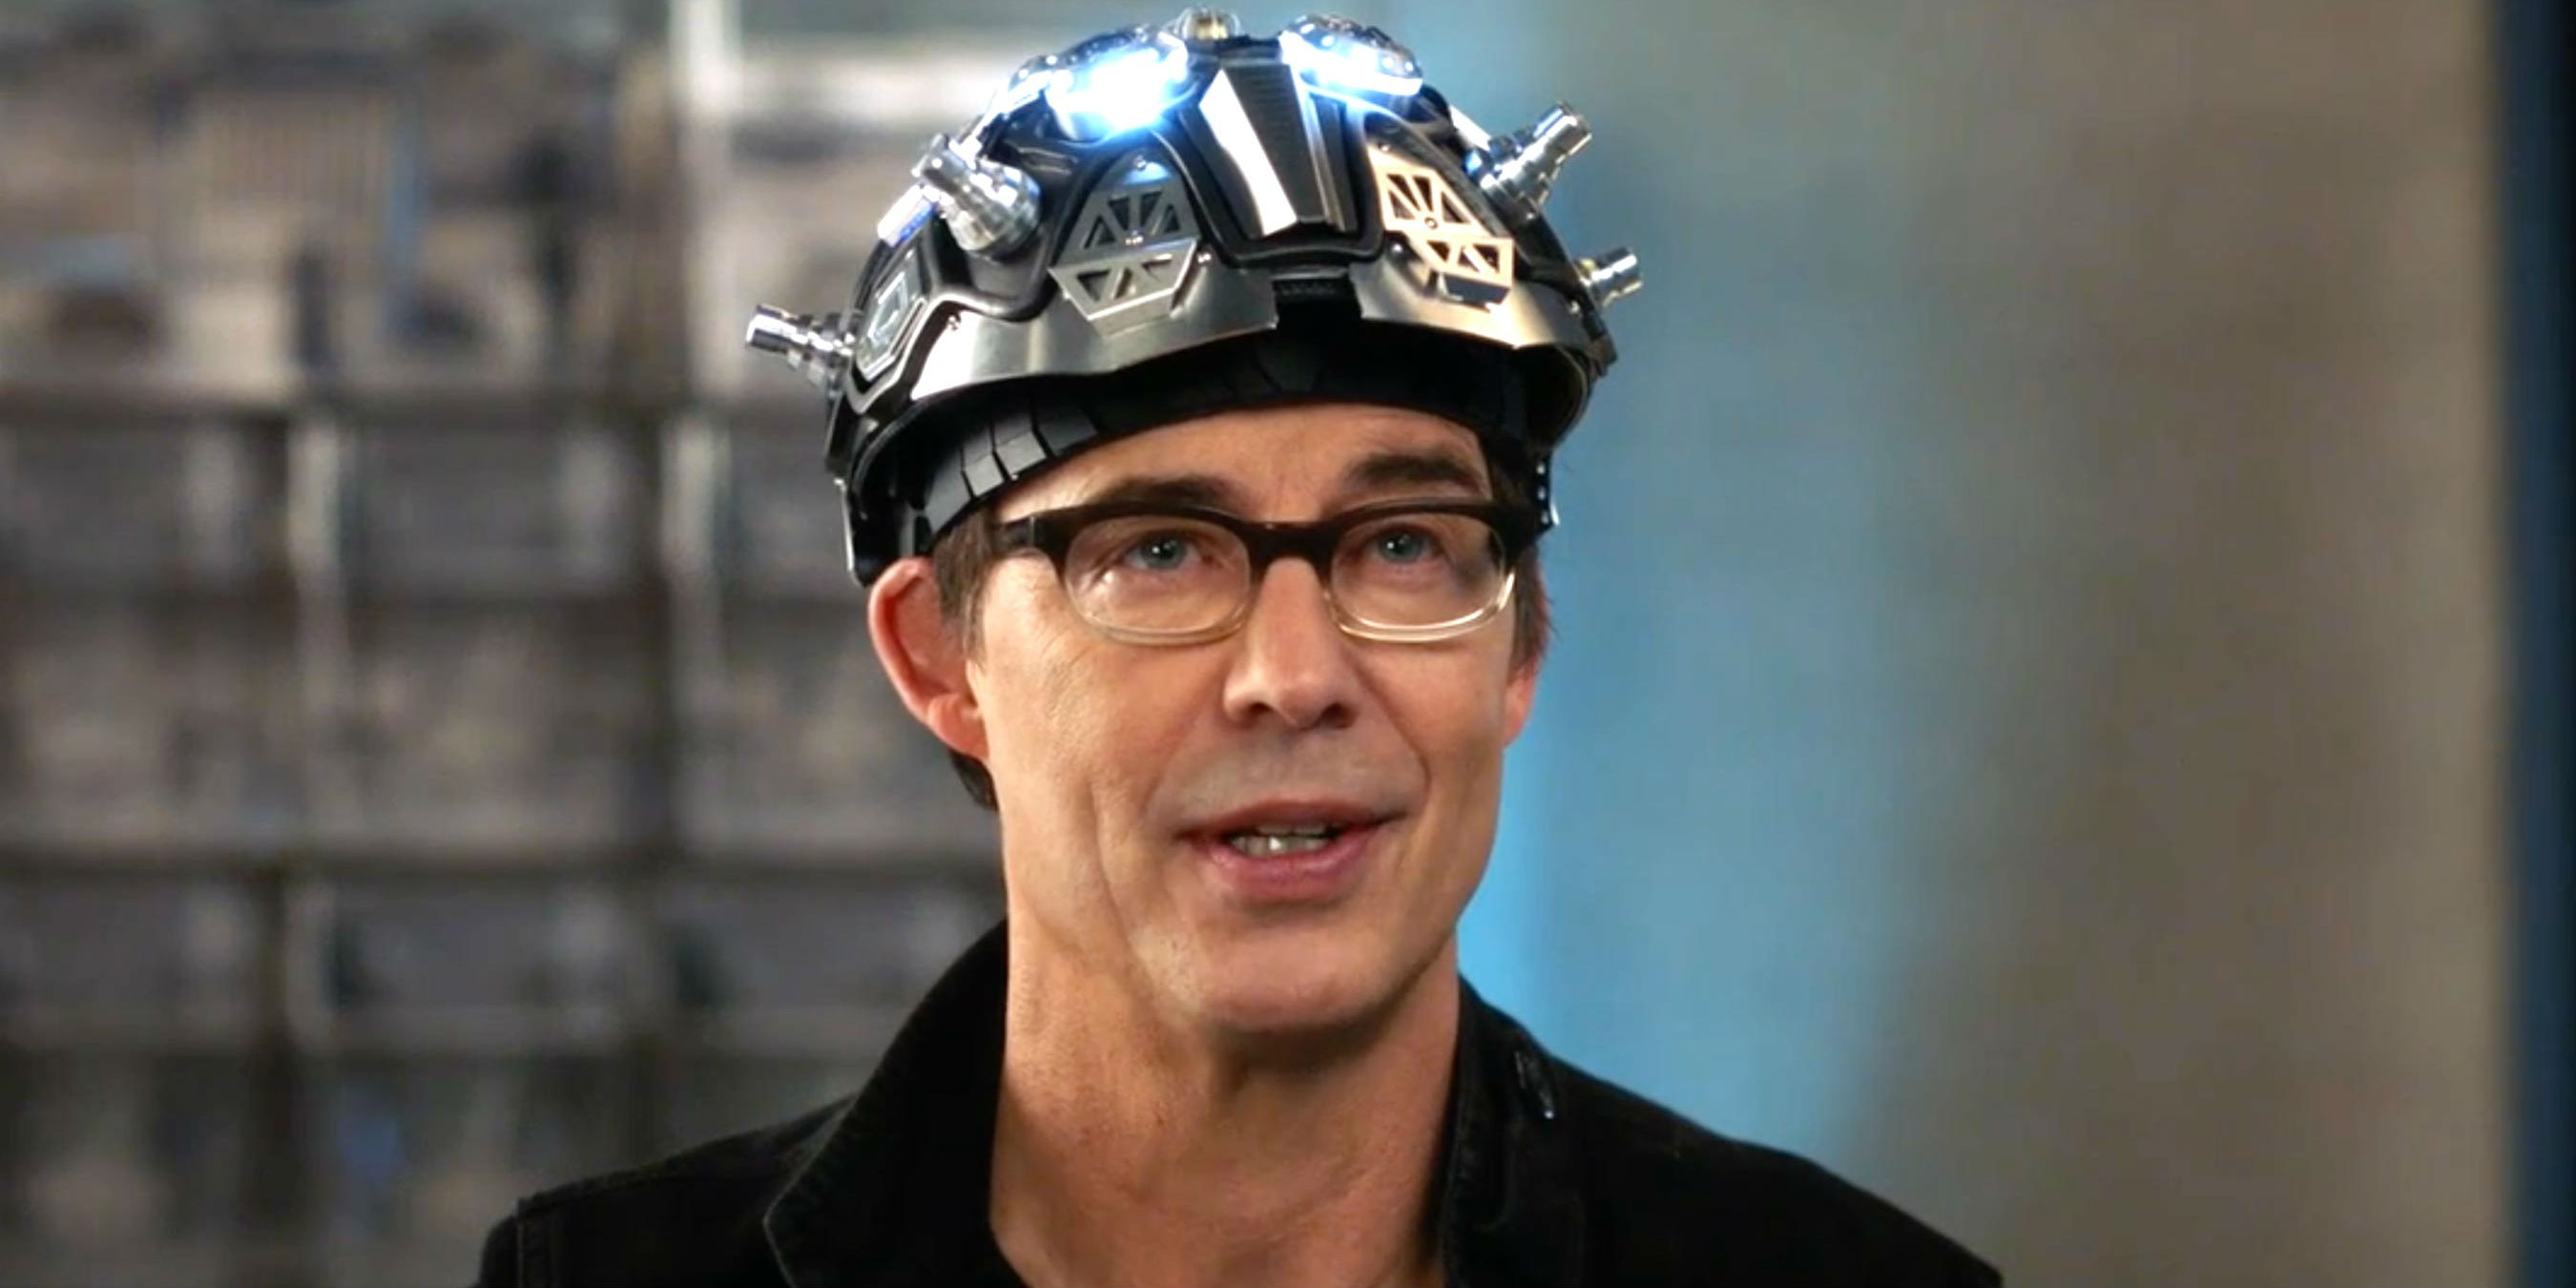 The Flash Season 4 Harry Thinking Cap Bus Metas Janet Petty Edwin Gauss